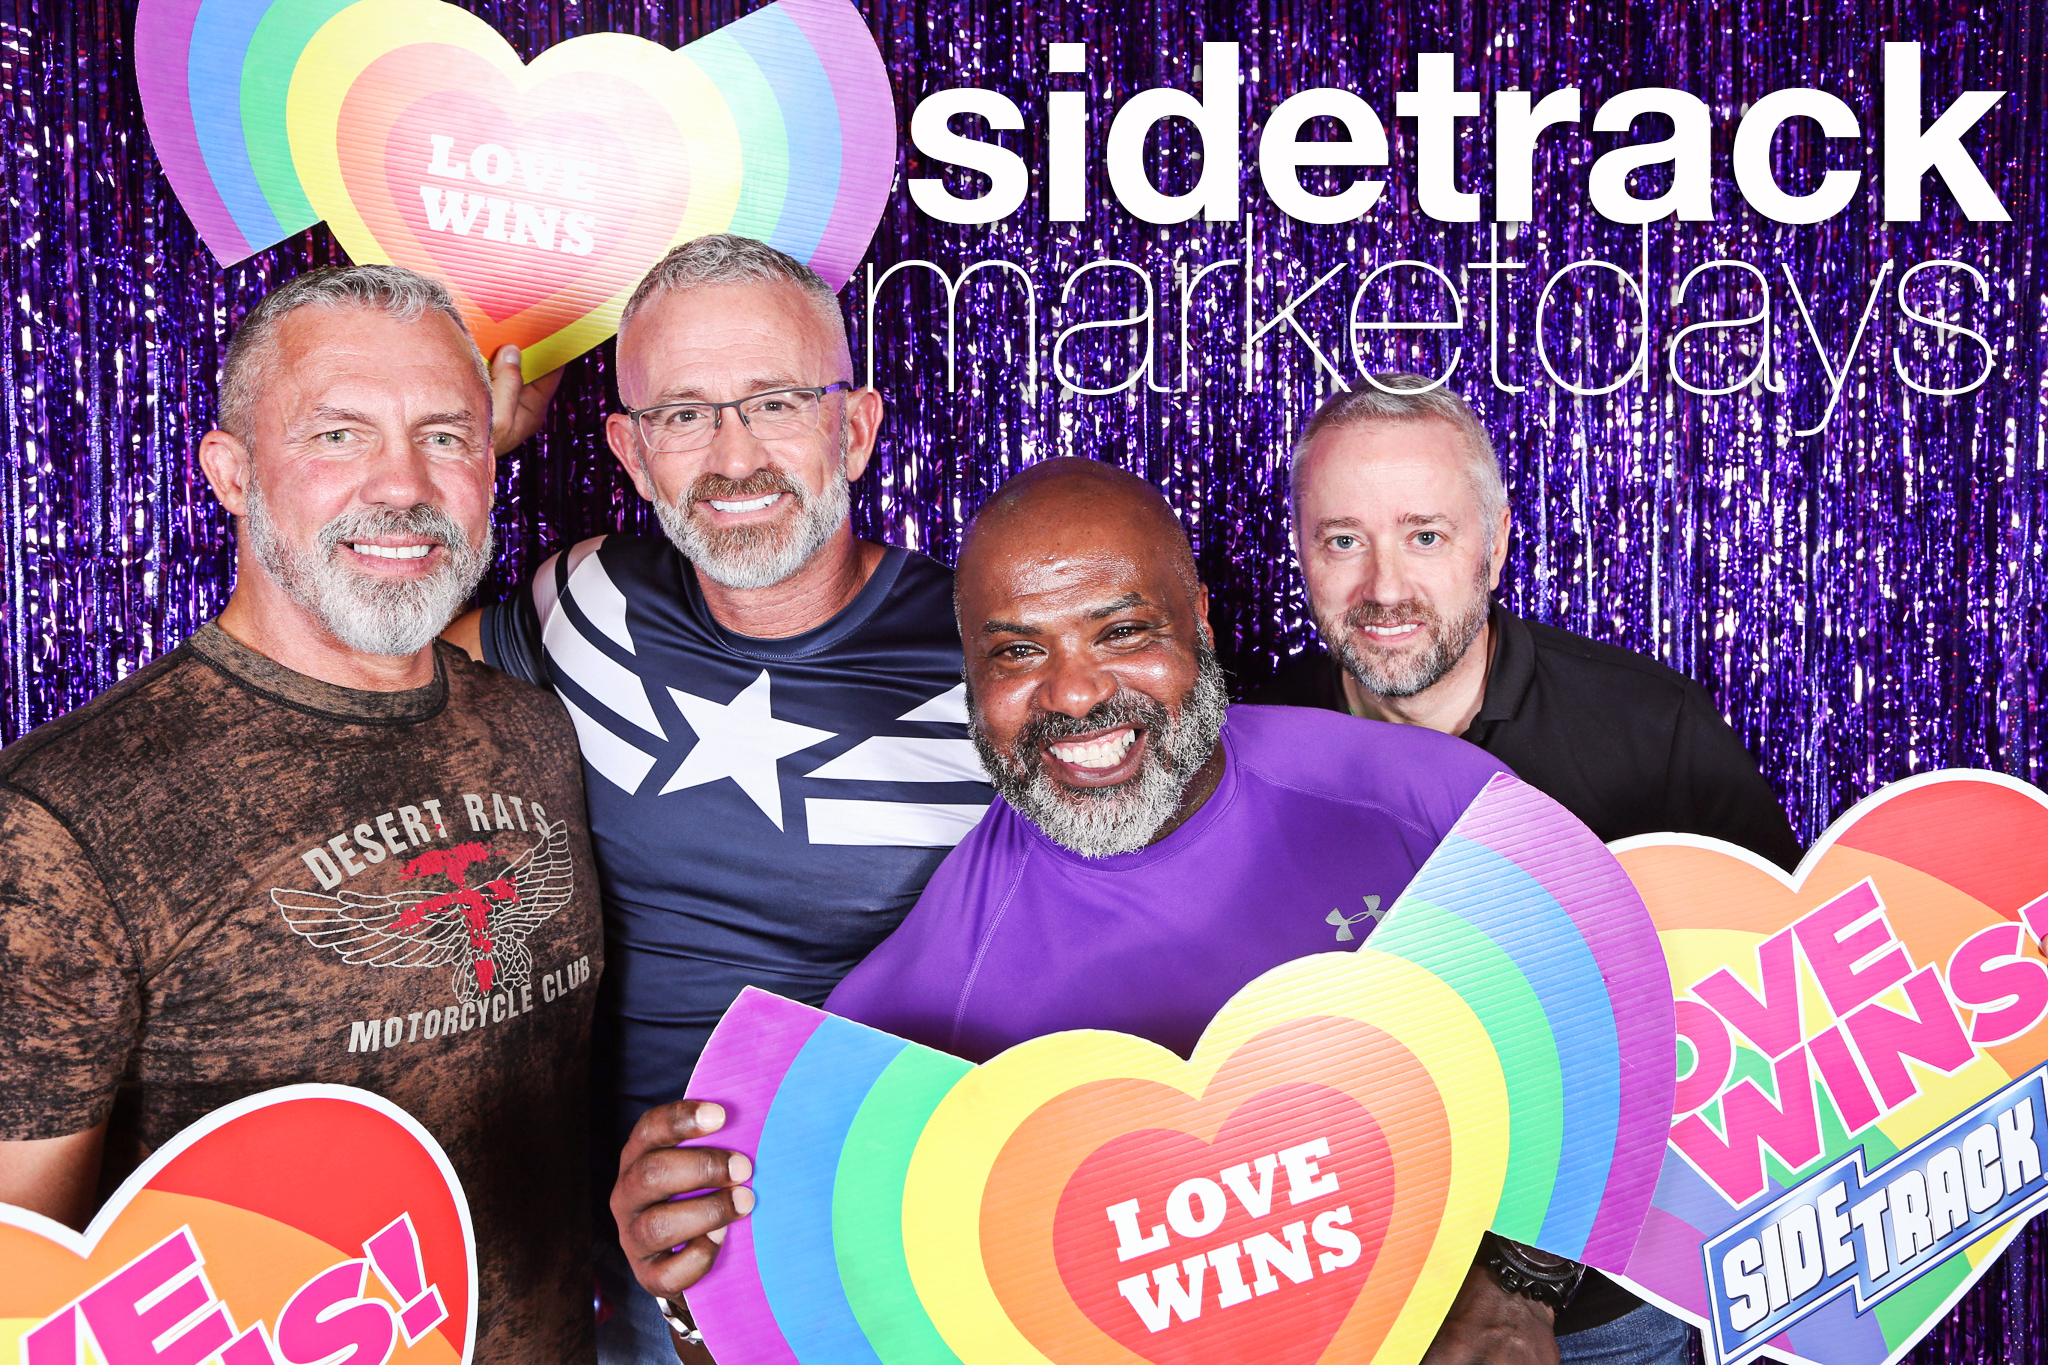 Marketdays at Sidetrack